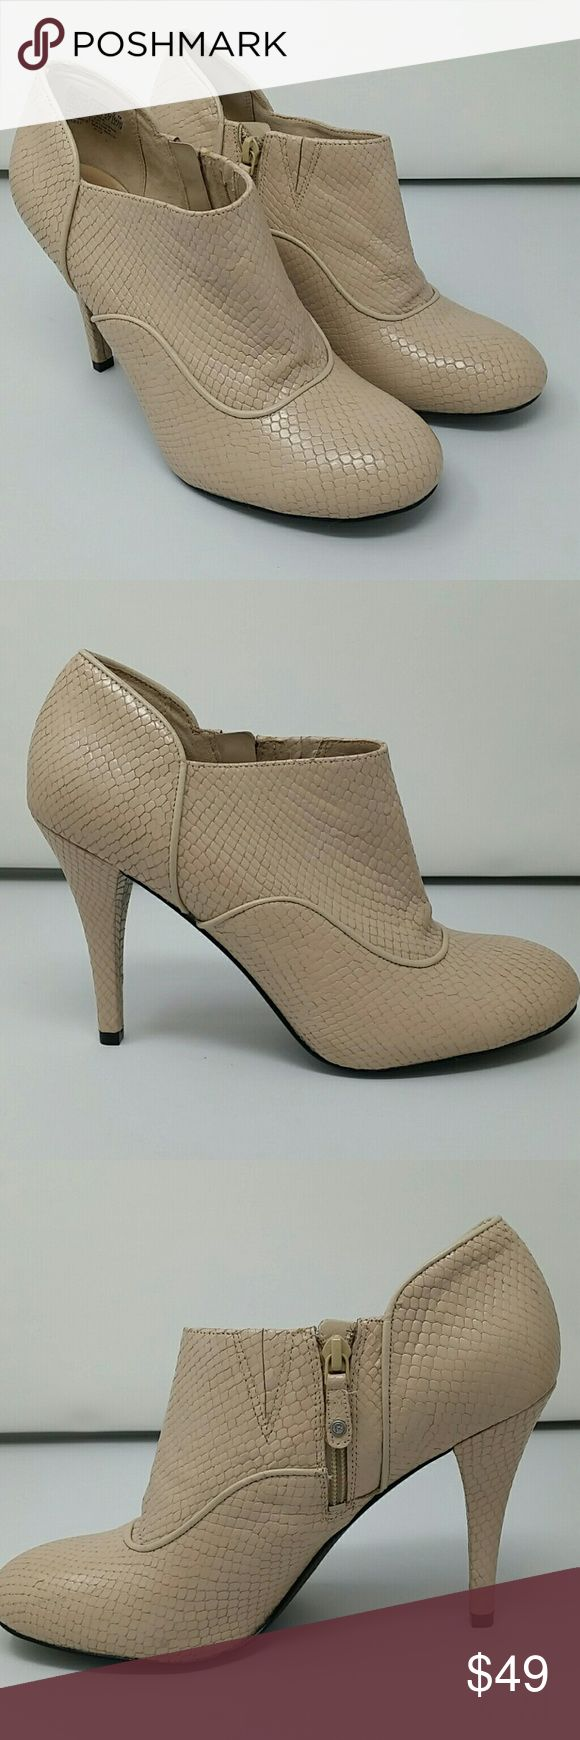 Rockport Presia Zip Shootie Ankle Boots Pumps 10 These were purchased, put away and never worn. I hope someone else can get better use out of them! They are a size 10 and are a faux snakeskin pattern in a beige-tan color. Rockport Shoes Ankle Boots & Booties